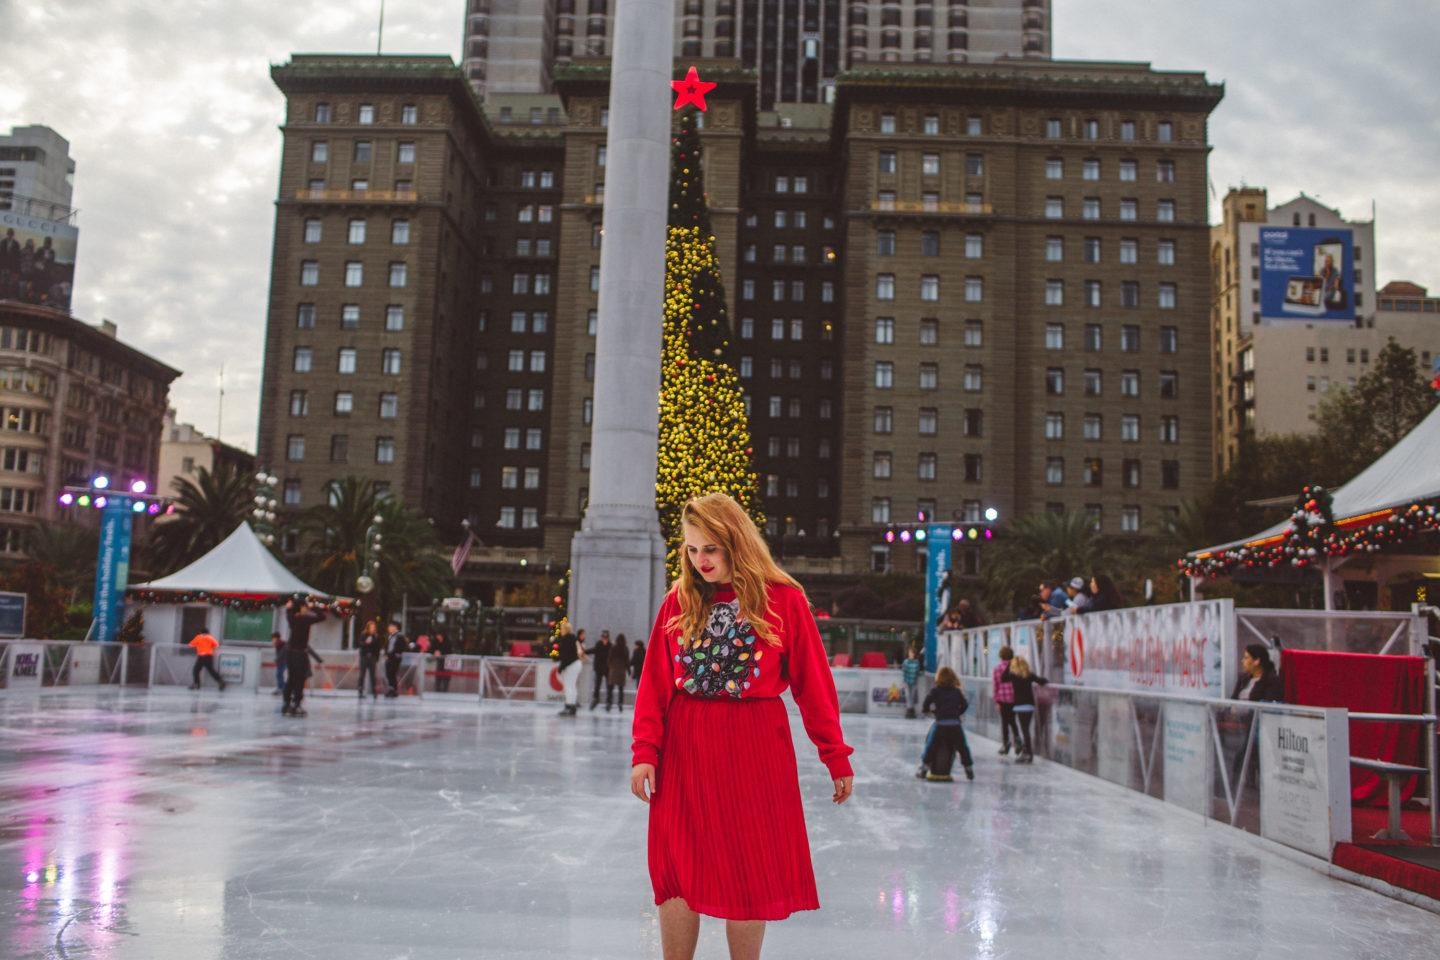 Union Square Ice Skating: Tips Before You Visit